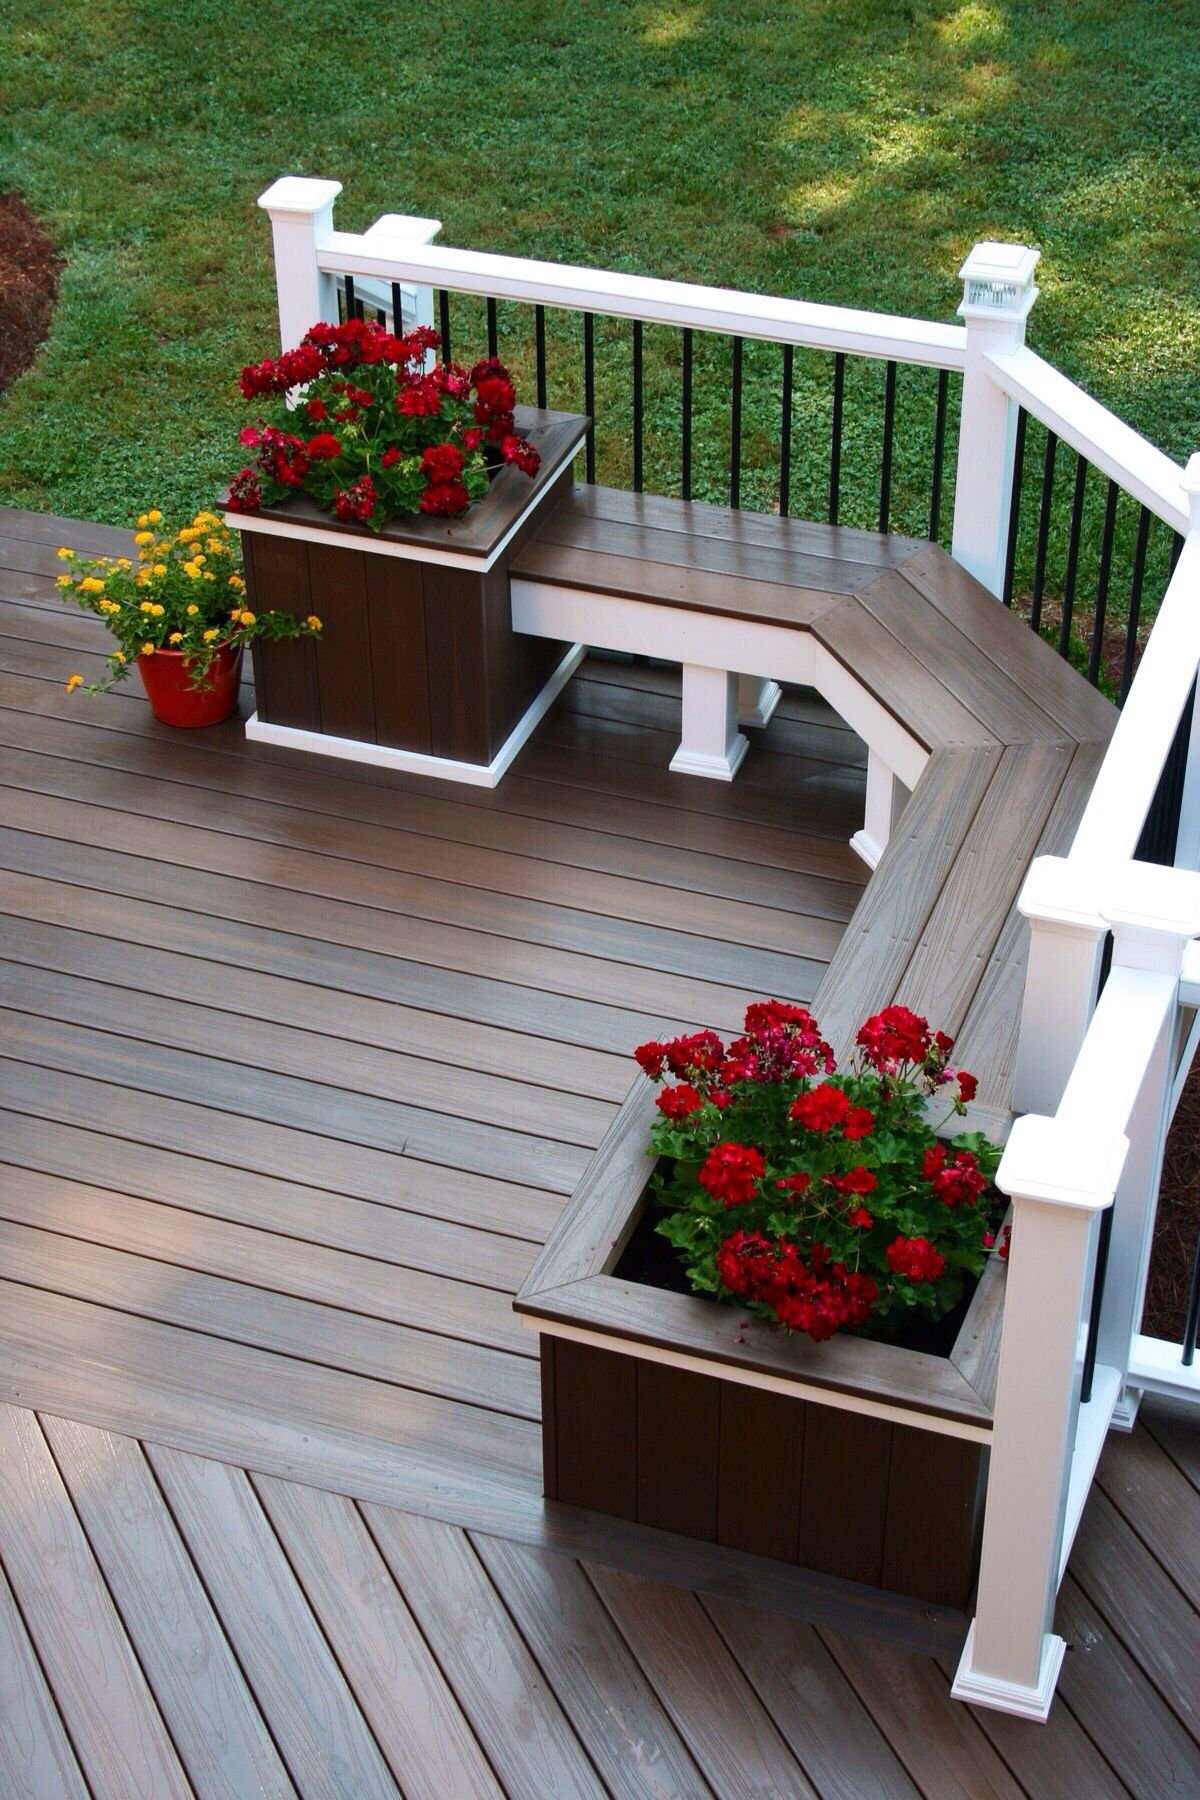 add a deck bench with potted plants for a relaxing place to sit